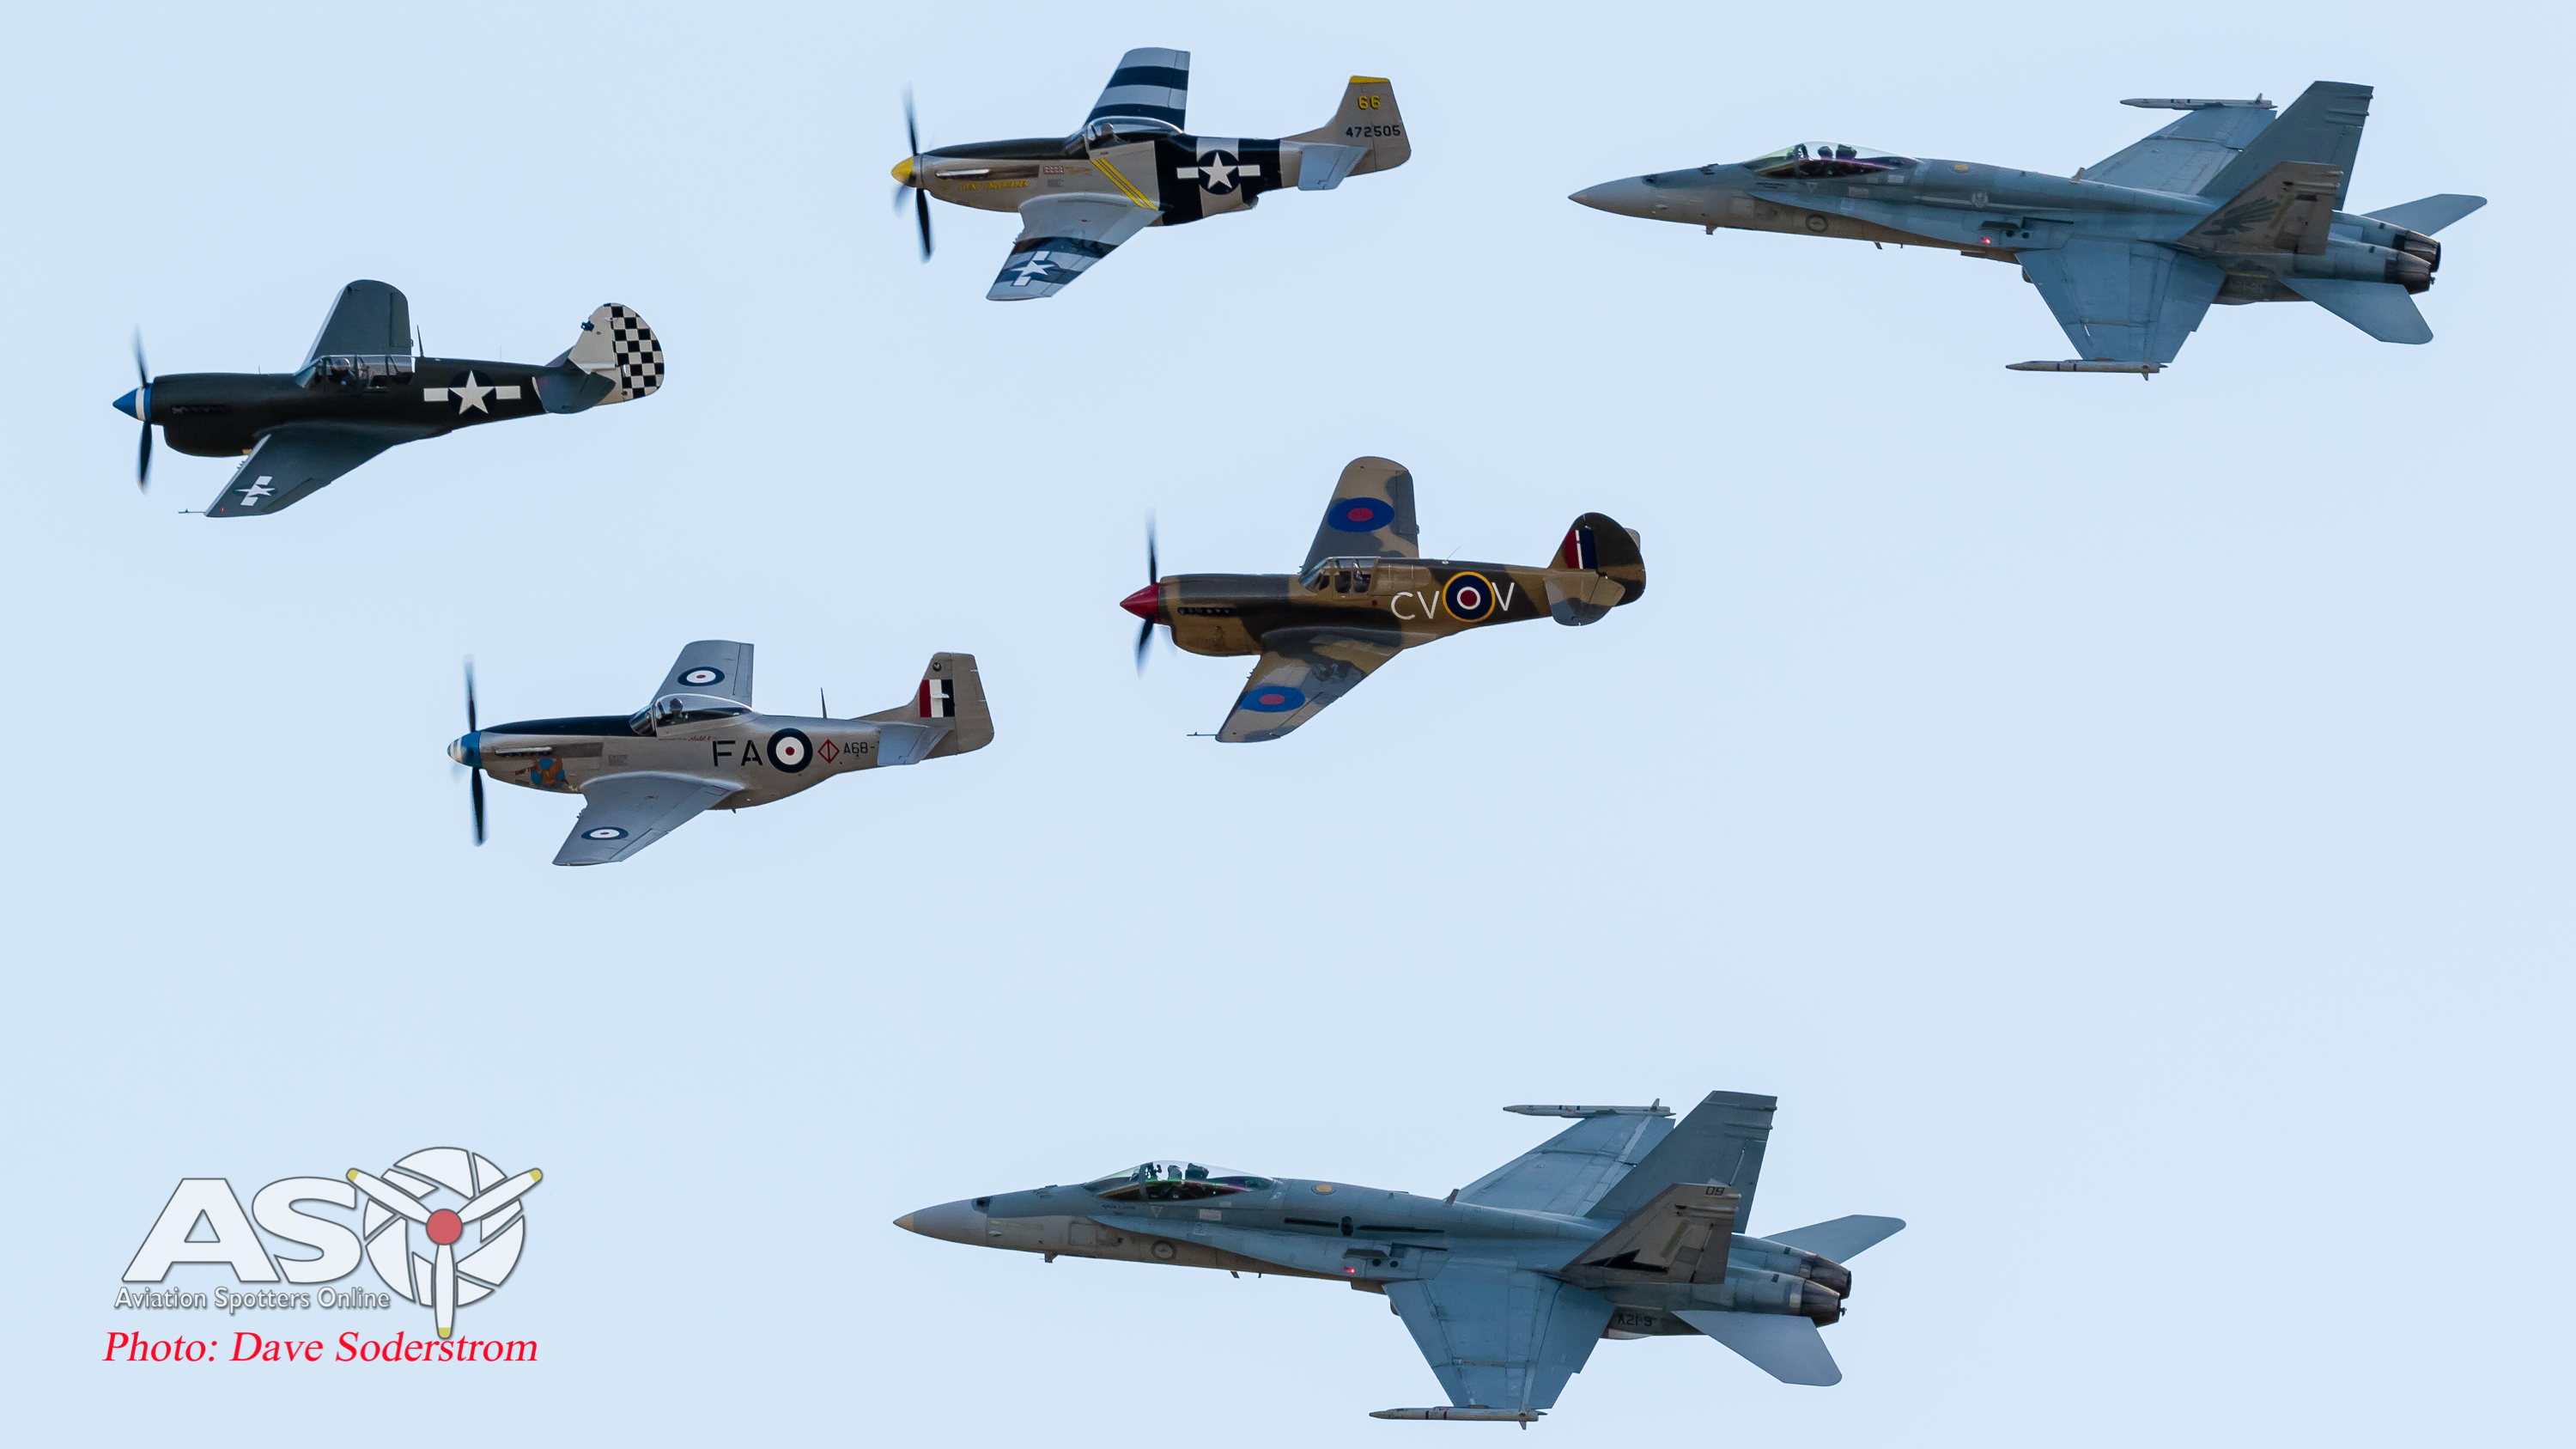 Warbirds Downunder Airshow 2018 The largest gathering of Warbird Aircraft in Australia